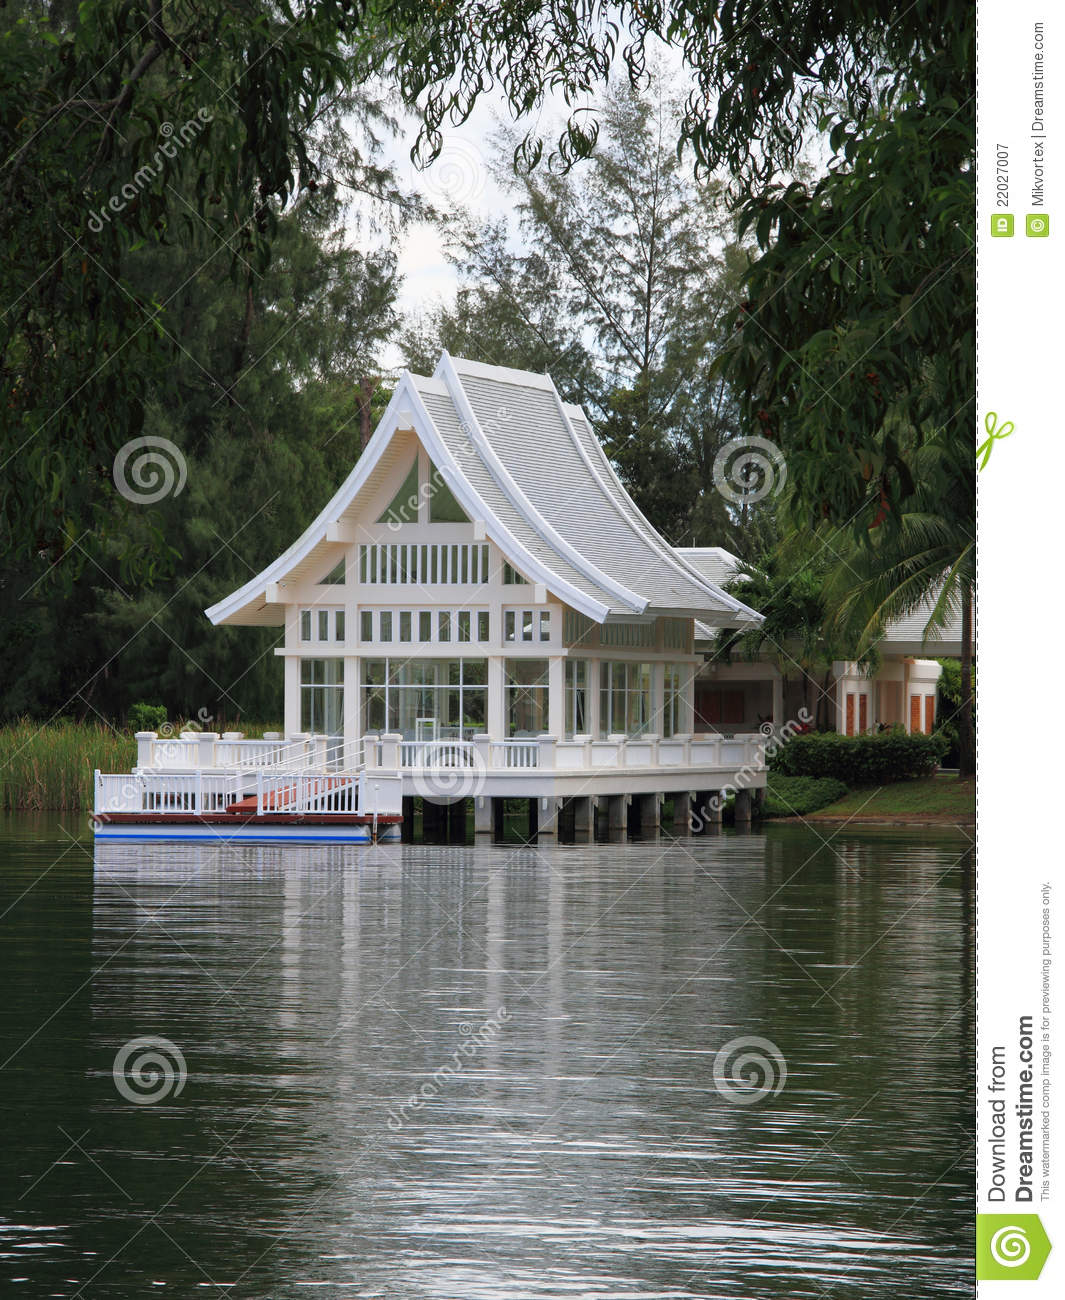 Weite Hose Sommer White Summer House Stock Image. Image Of Grass, Beautiful